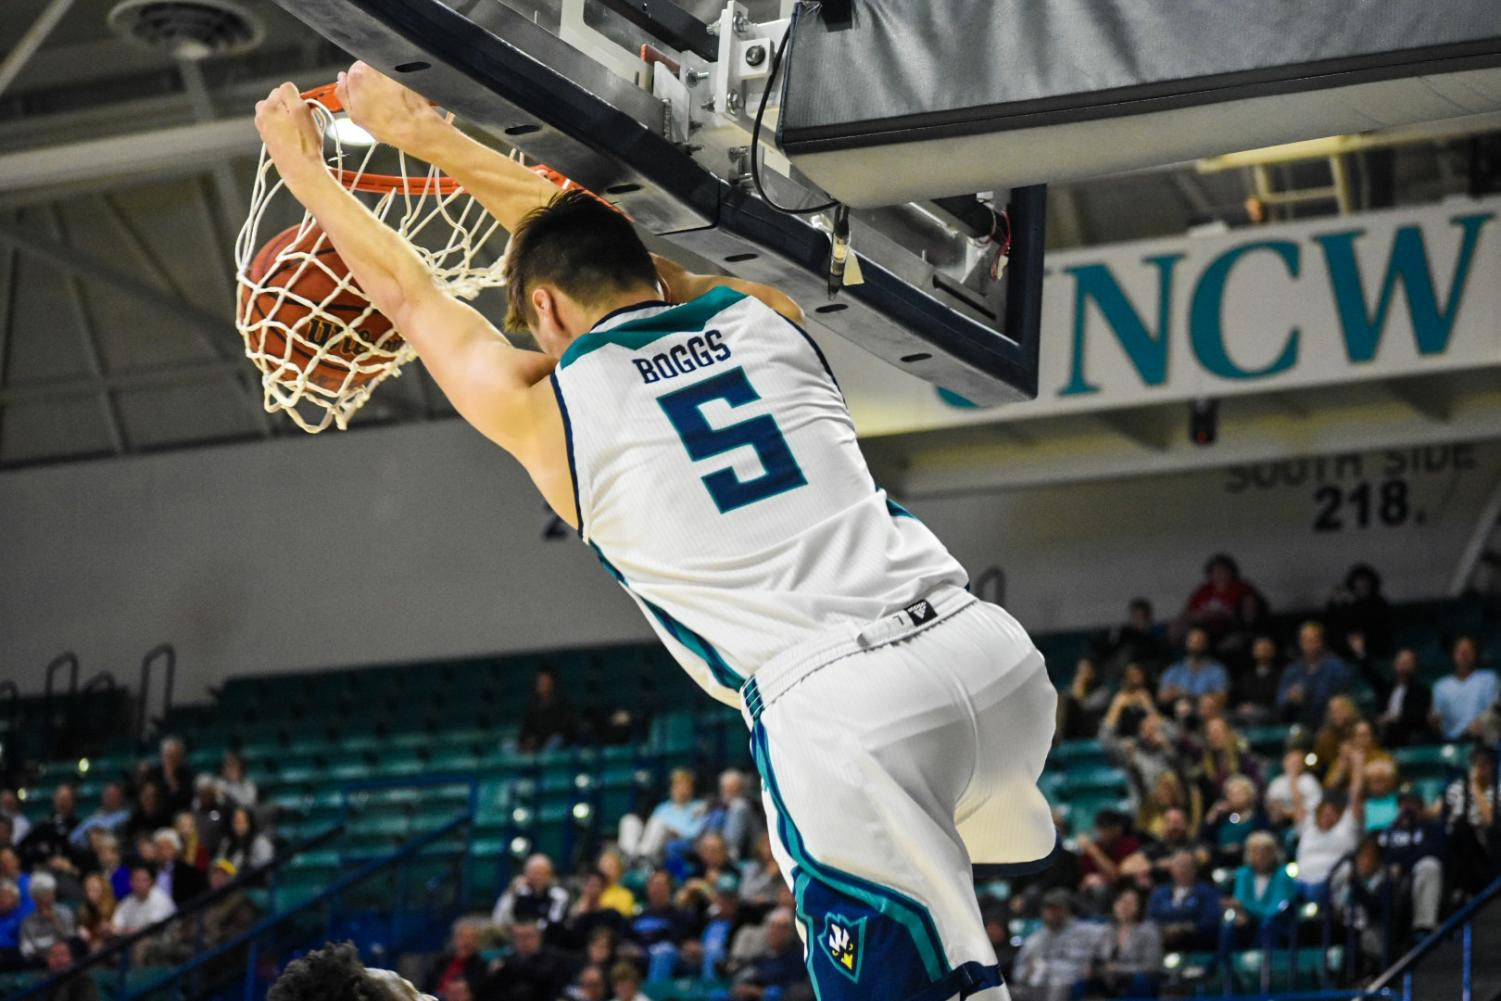 Jake Boggs slams one down during UNCW's matchup with N.C. Wesleyan on Nov. 19, 2019.